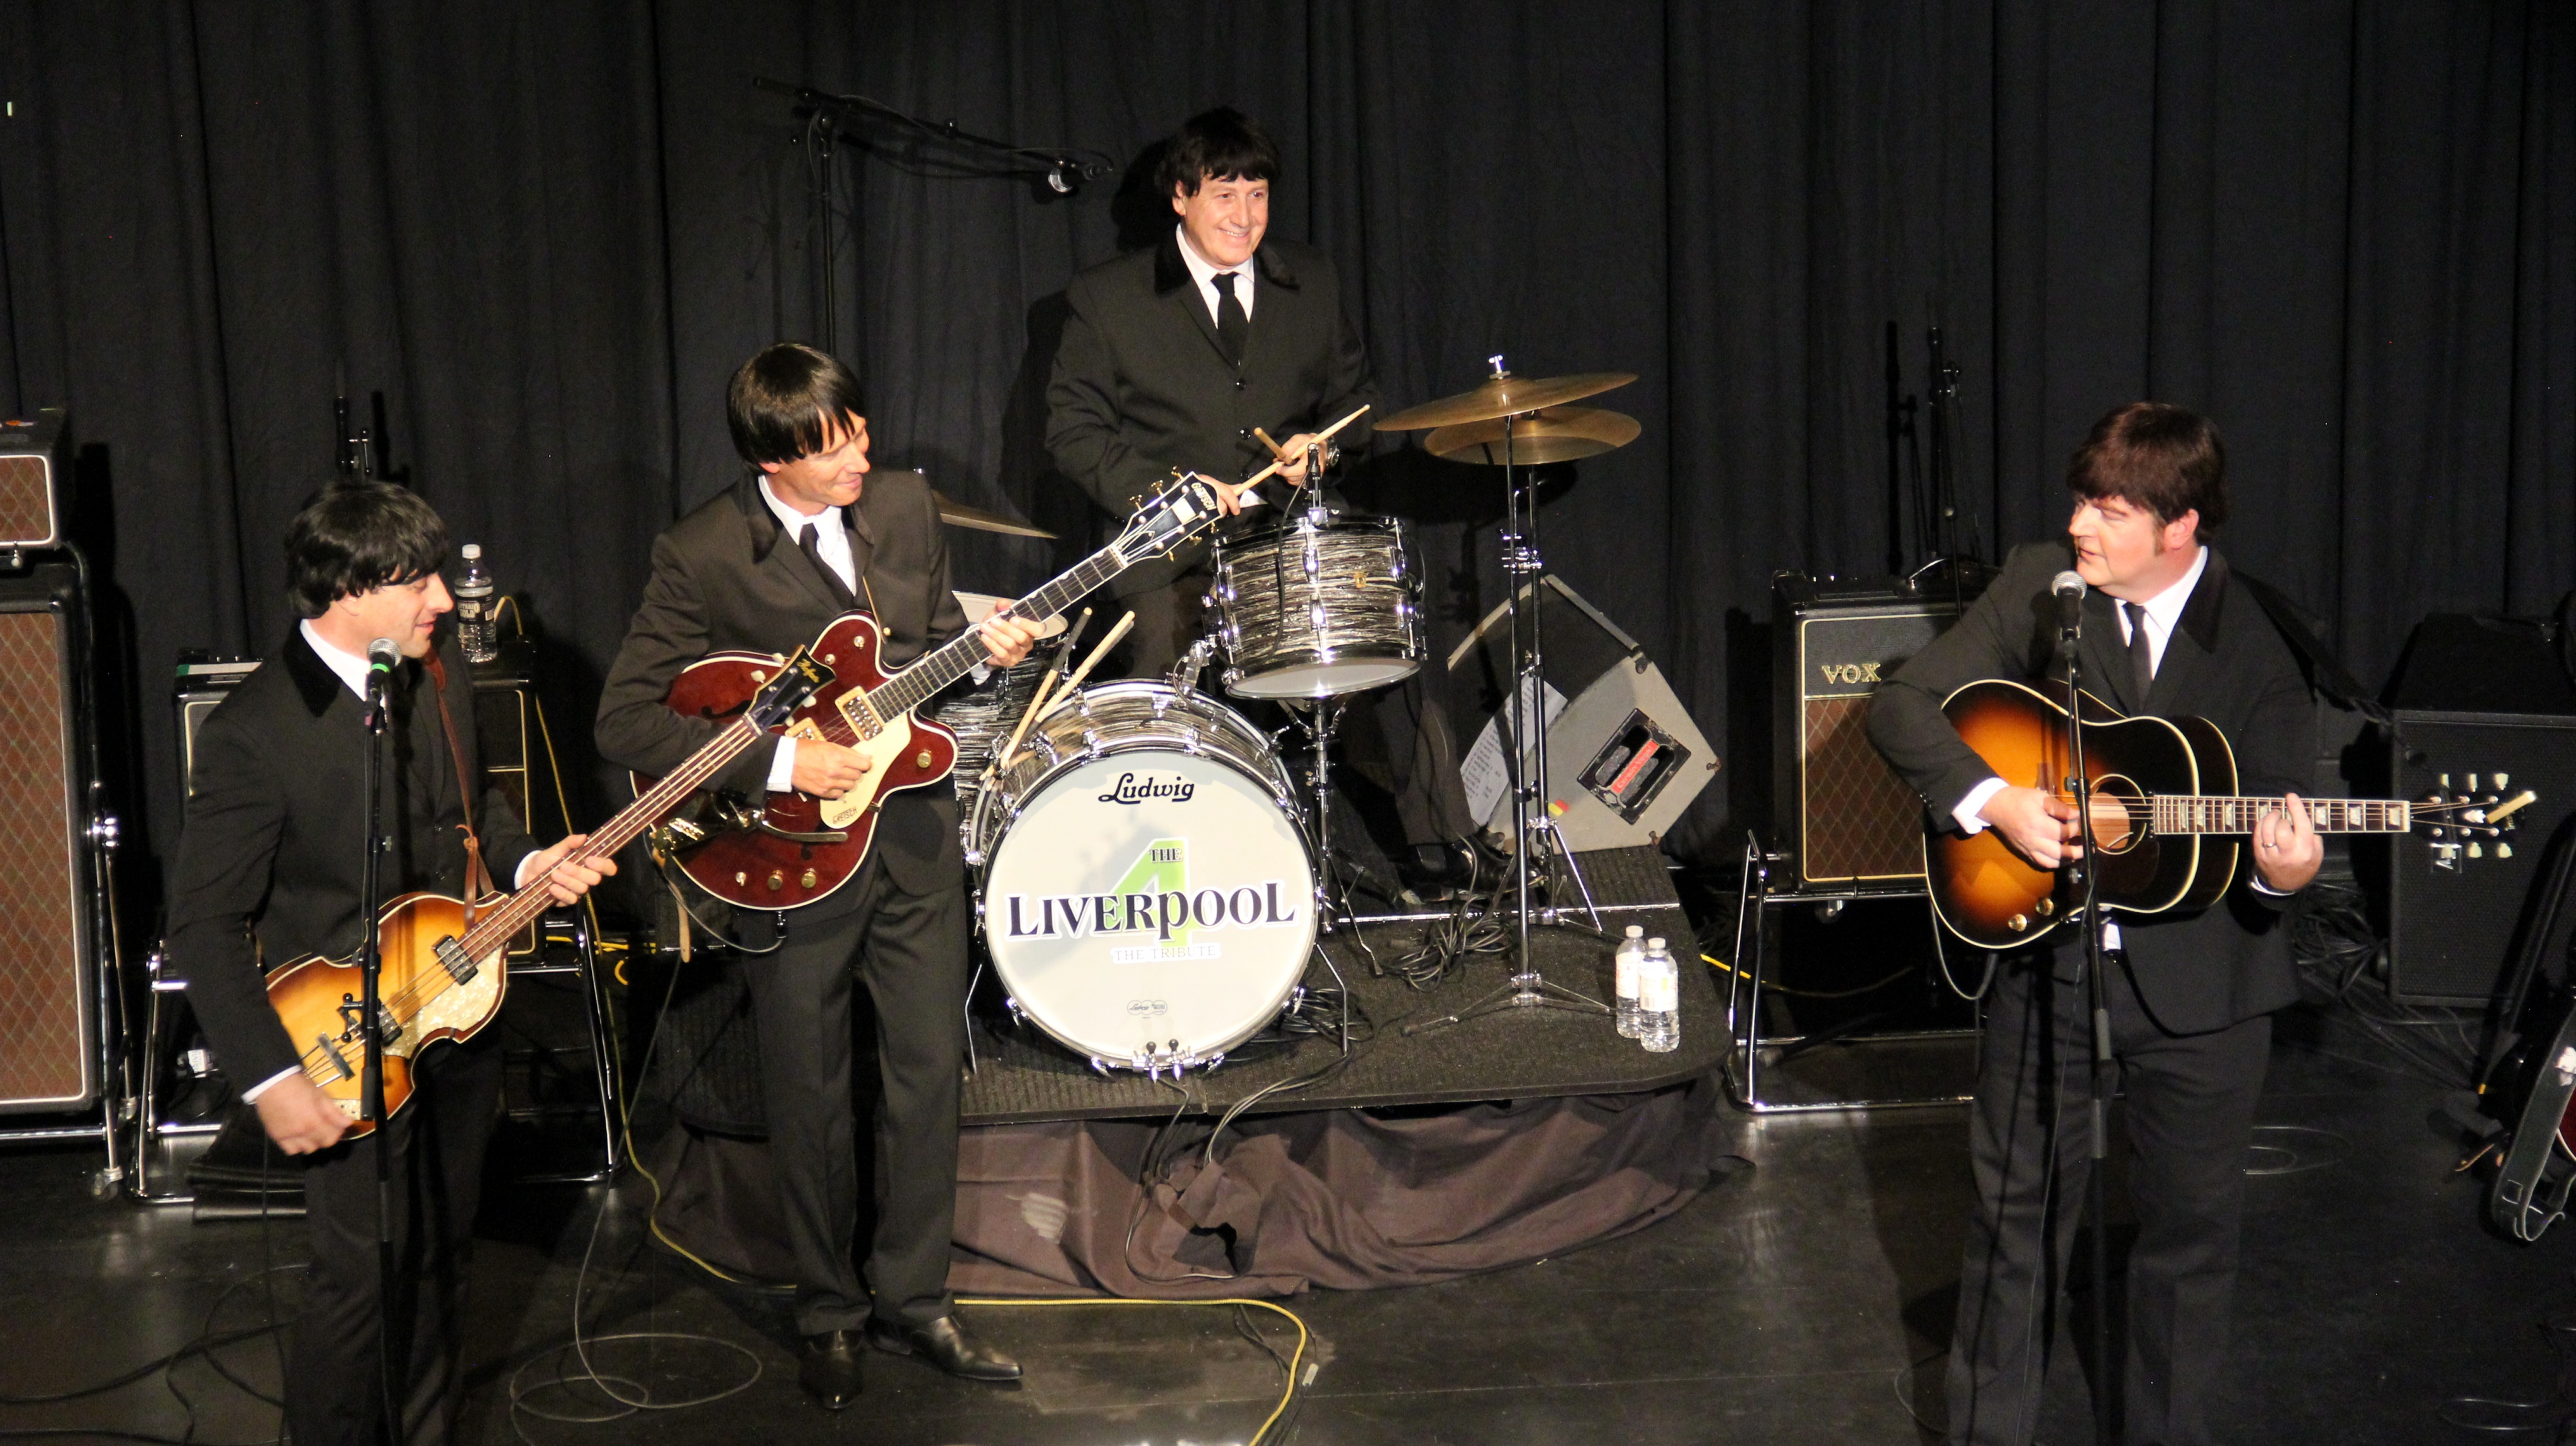 Promotional photo of The Liverpool 4